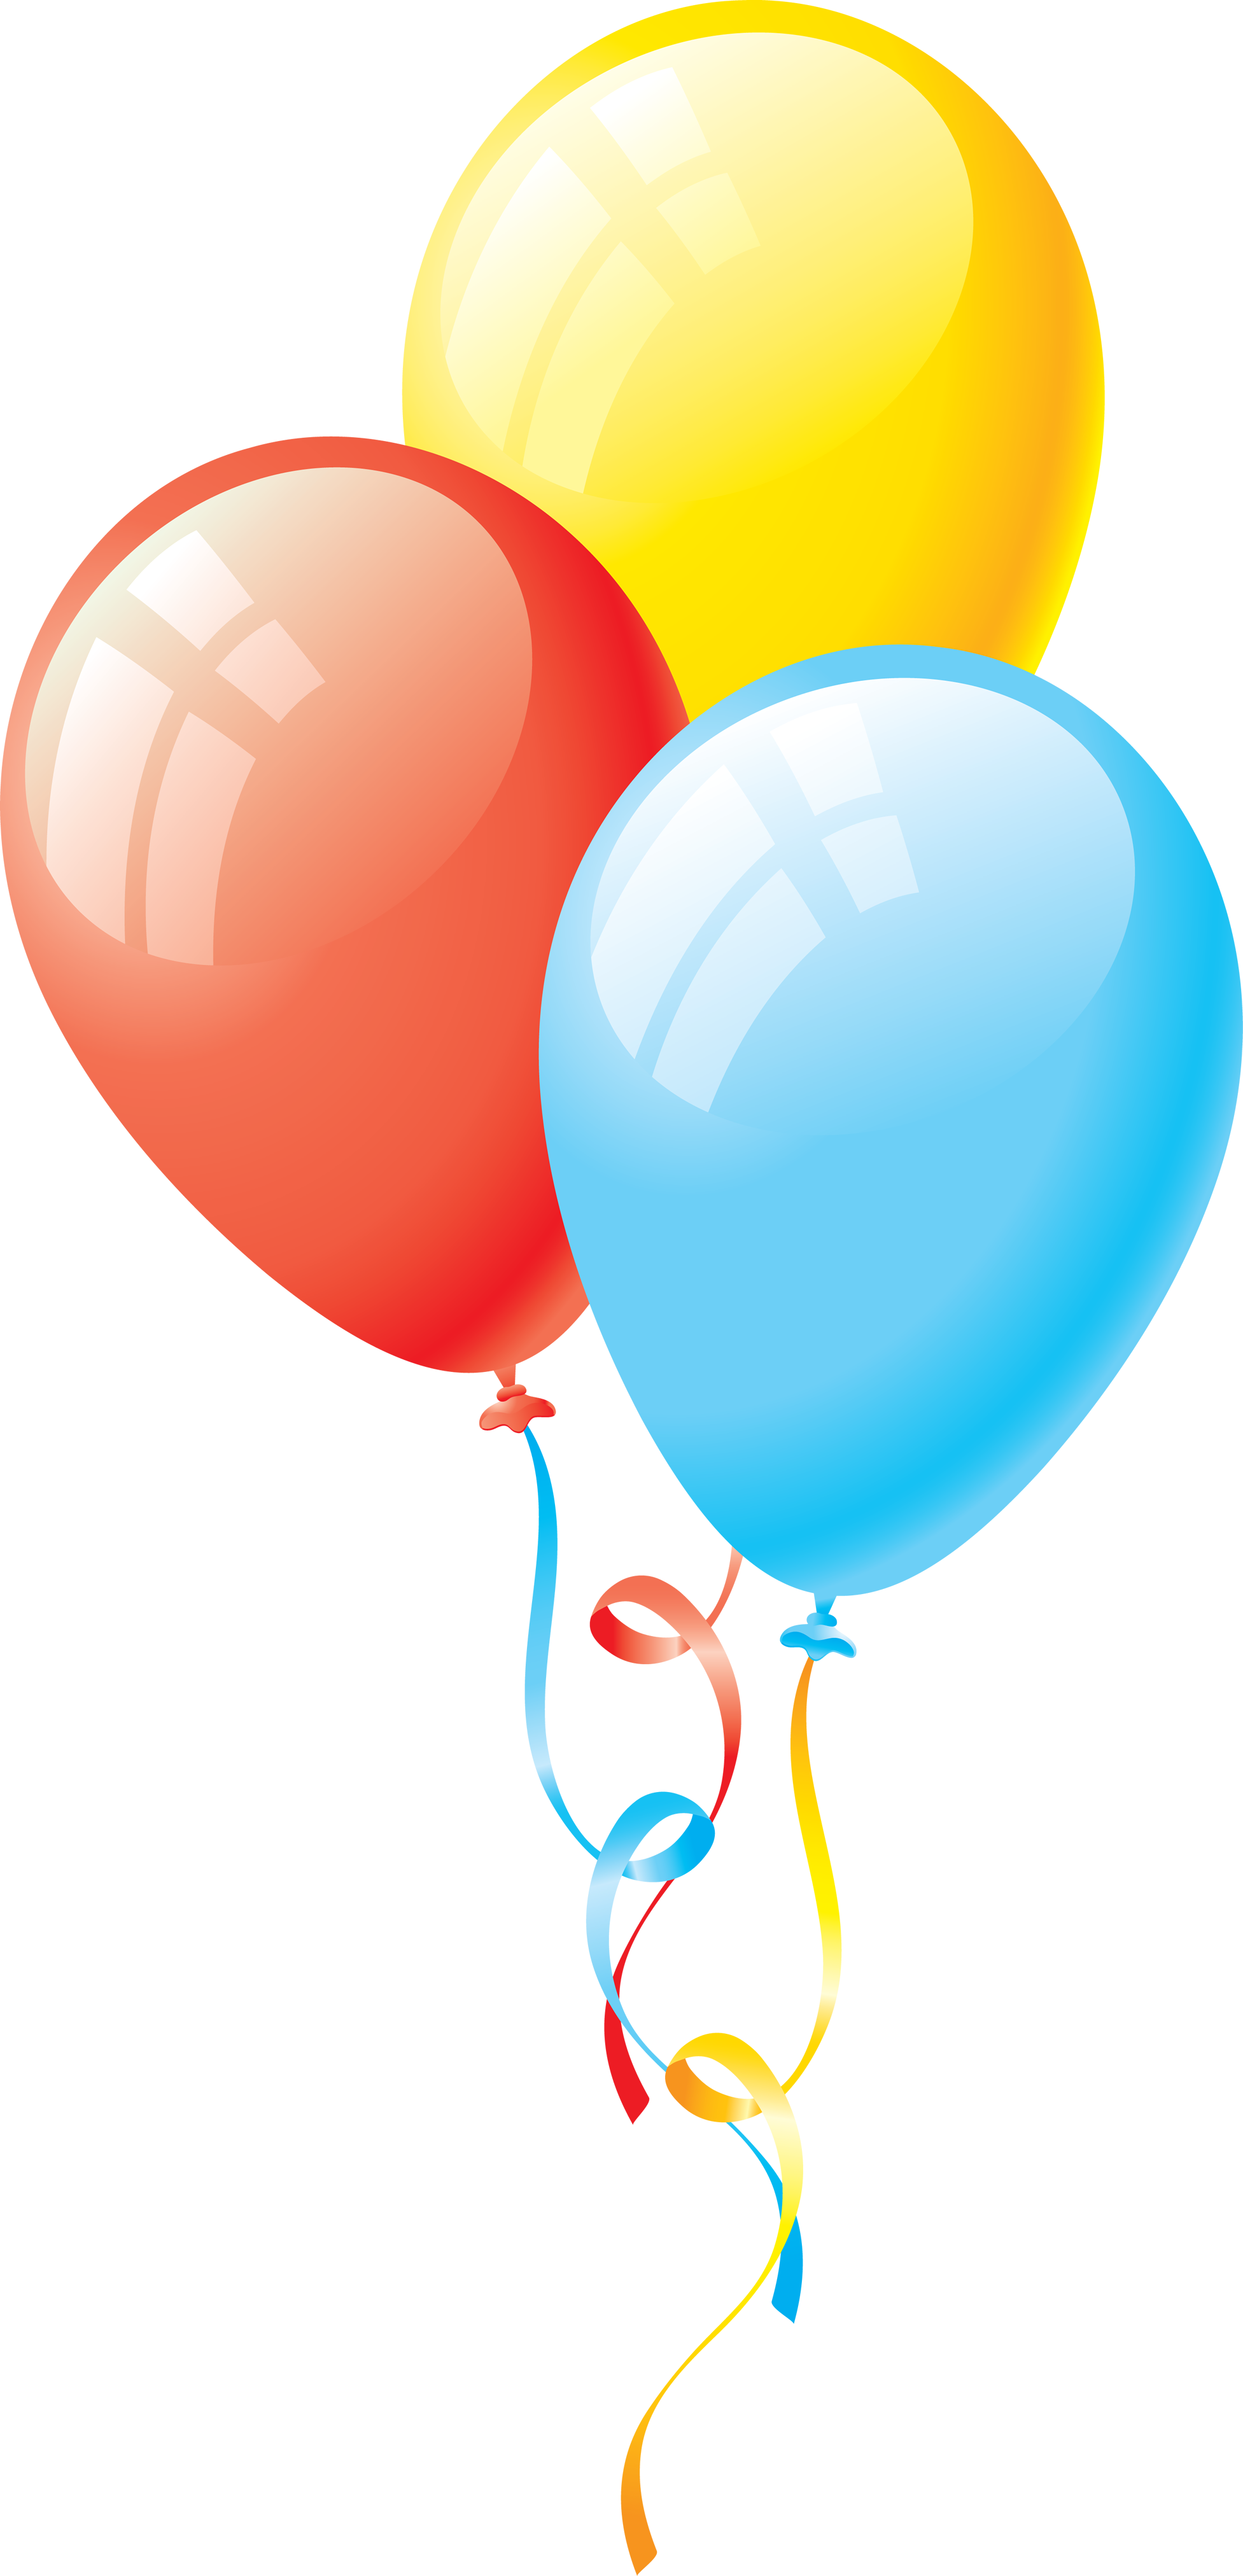 Colorful balloon png image. Ballon clipart birthday accessory picture freeuse download